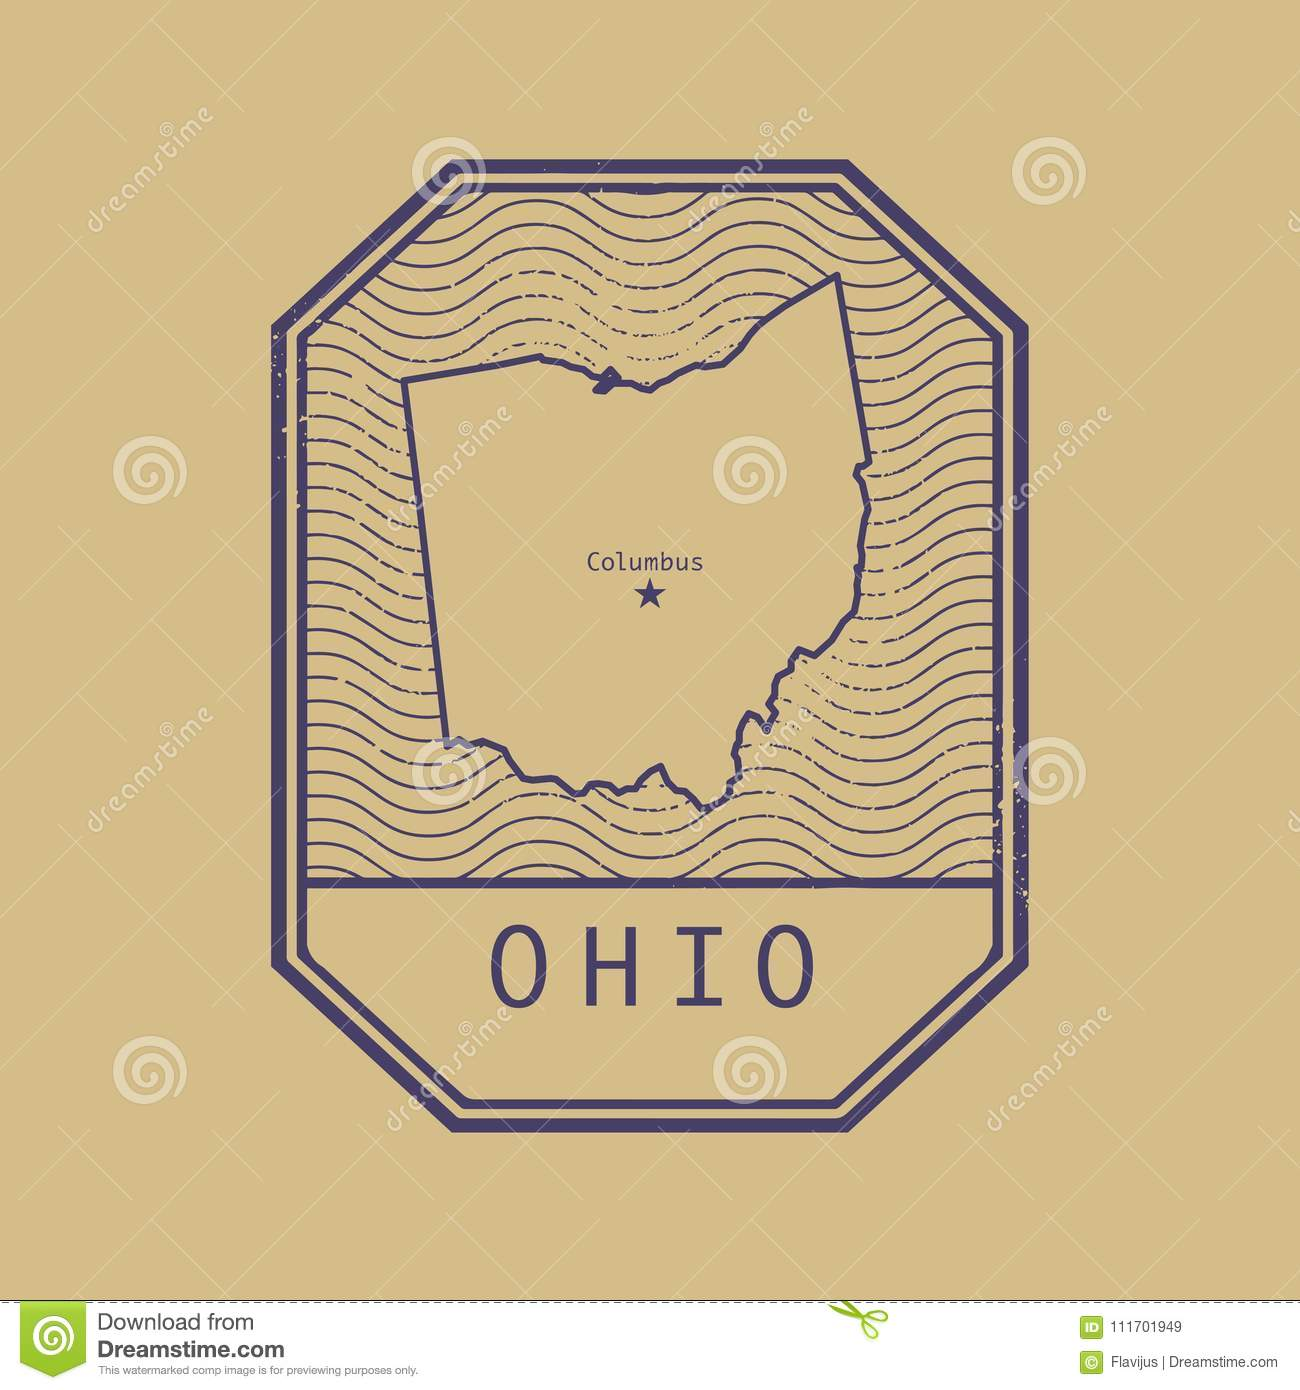 Ohio United States Map.Stamp With The Name And Map Of Ohio United States Stock Vector